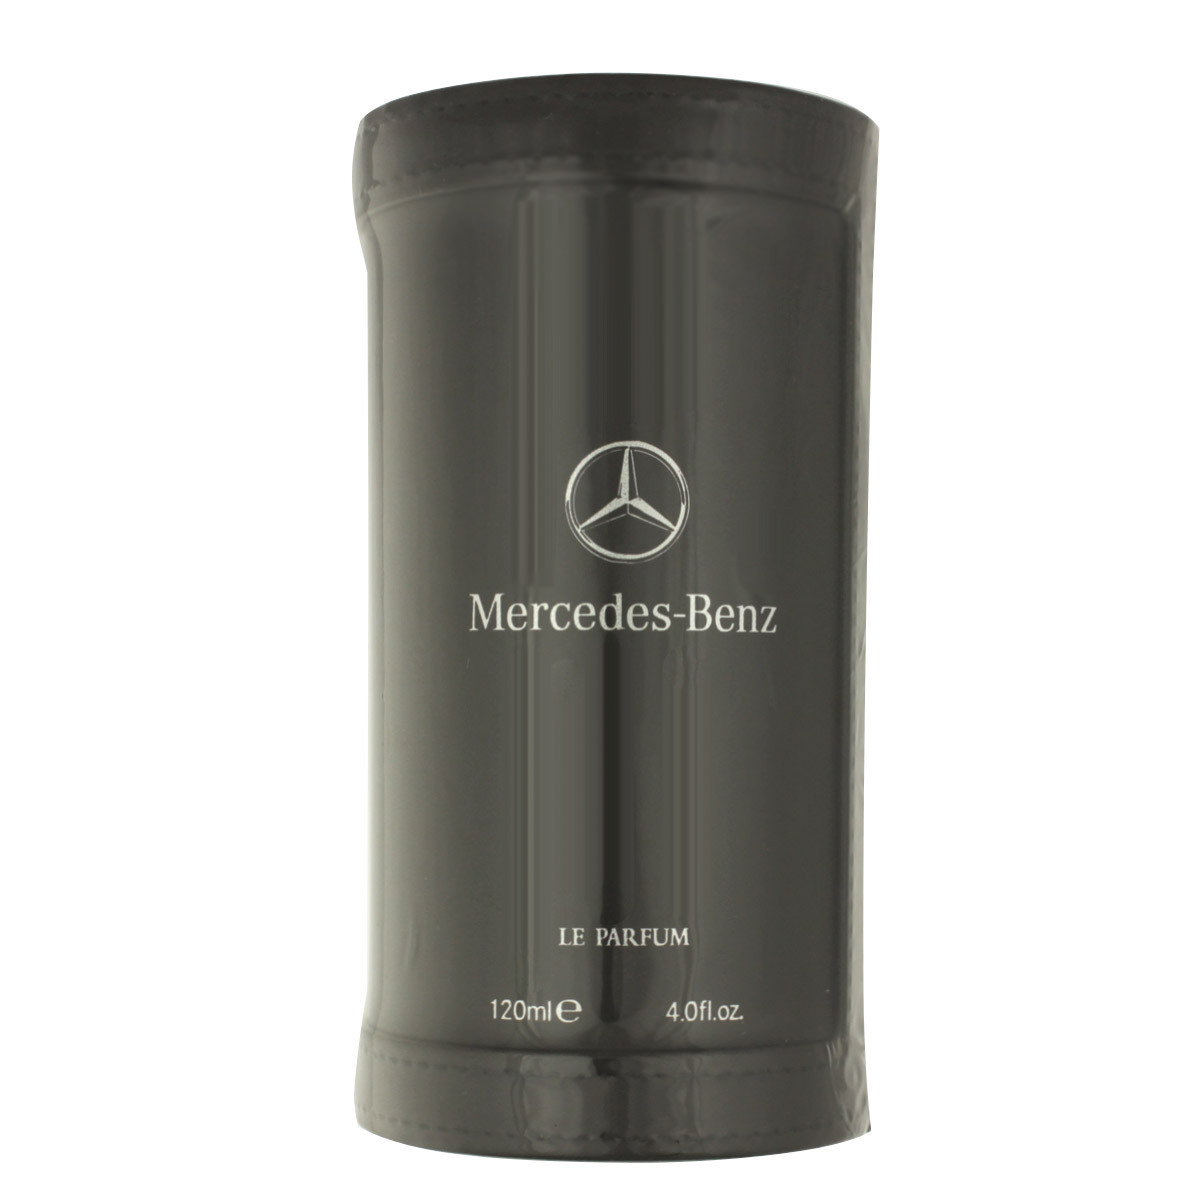 mercedes benz le parfum eau de parfum 120 ml man le. Black Bedroom Furniture Sets. Home Design Ideas